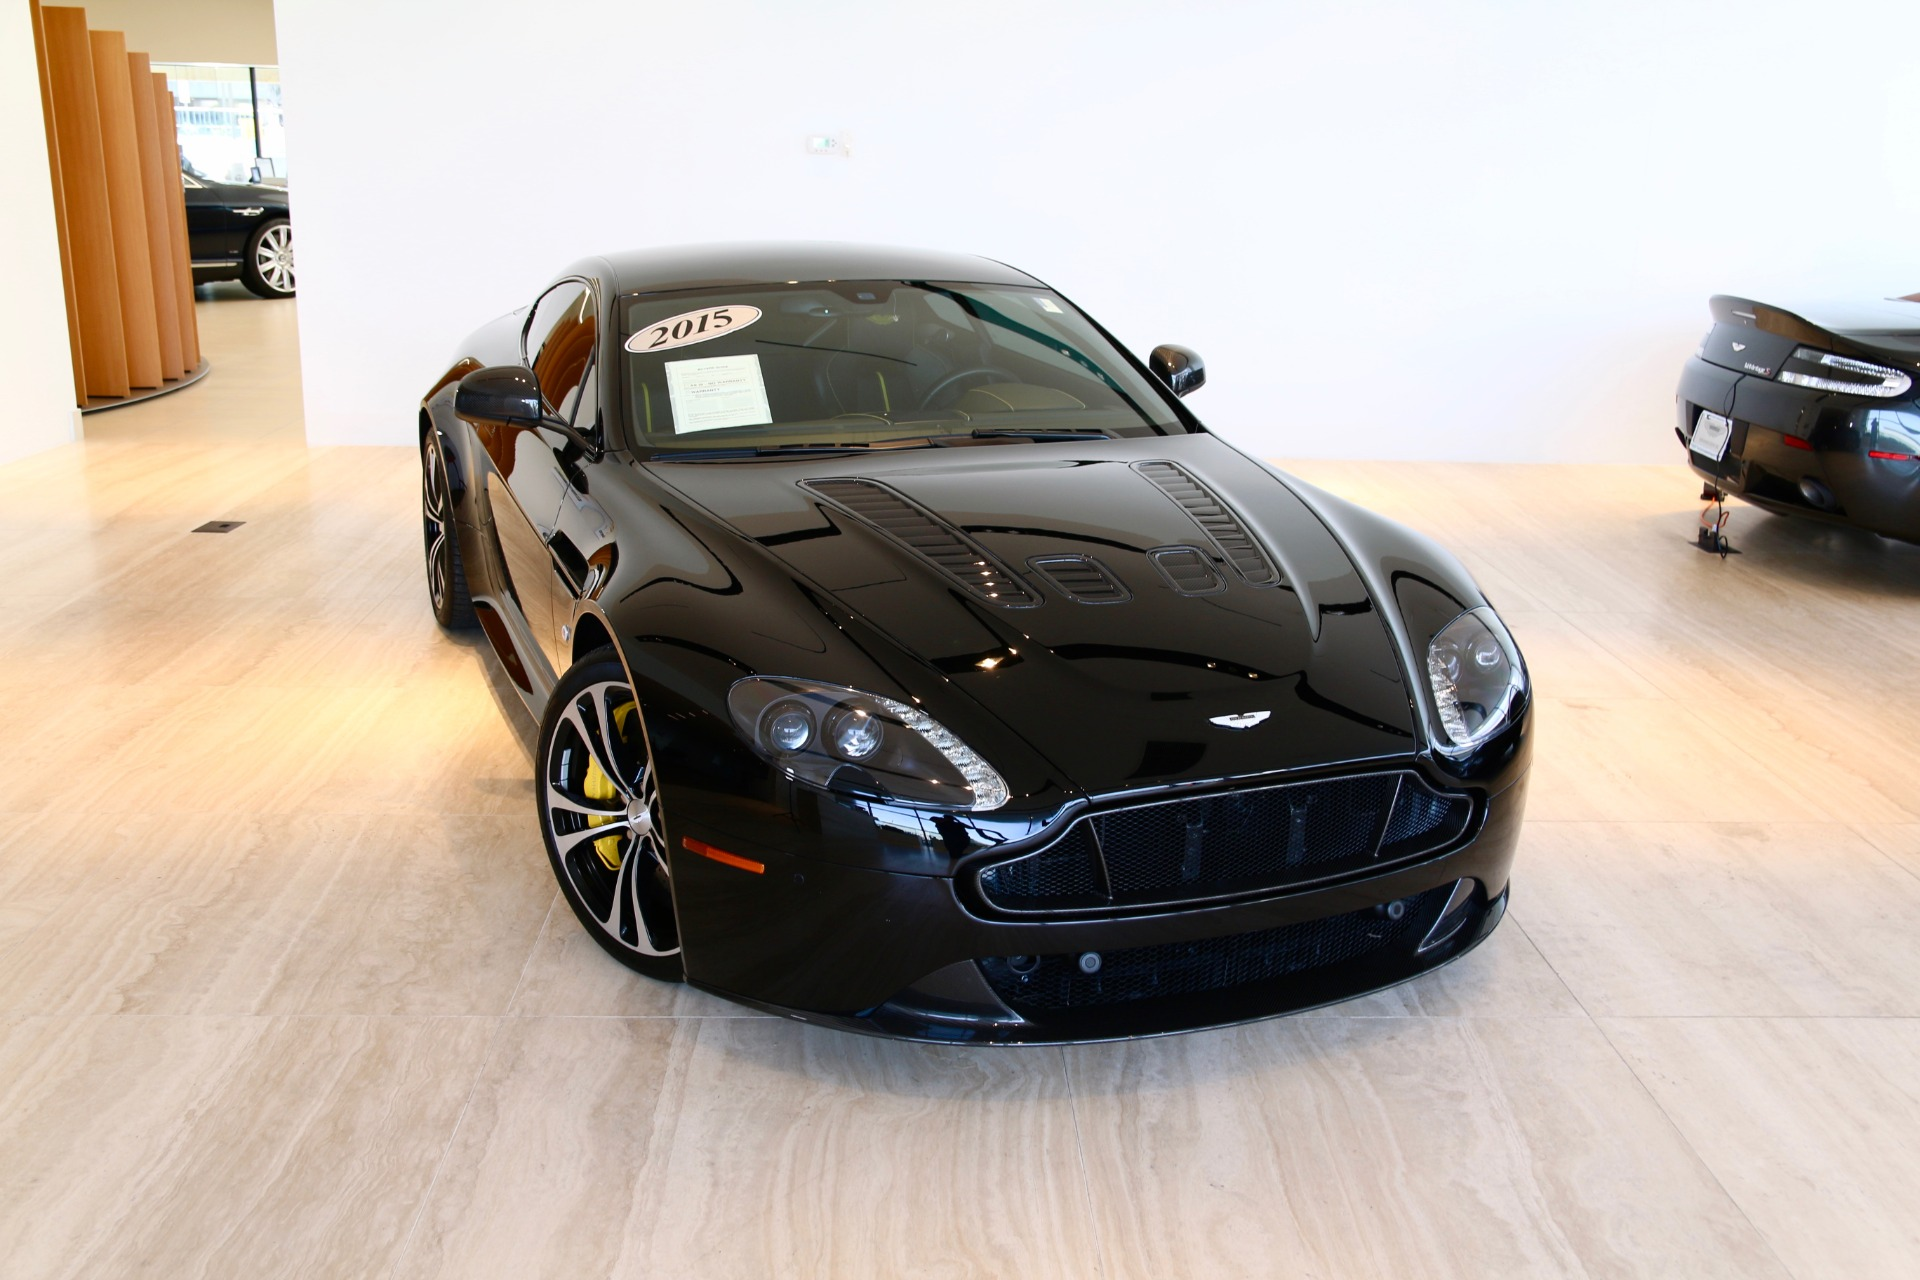 2015 aston martin v12 vantage s stock # ps01596 for sale near vienna